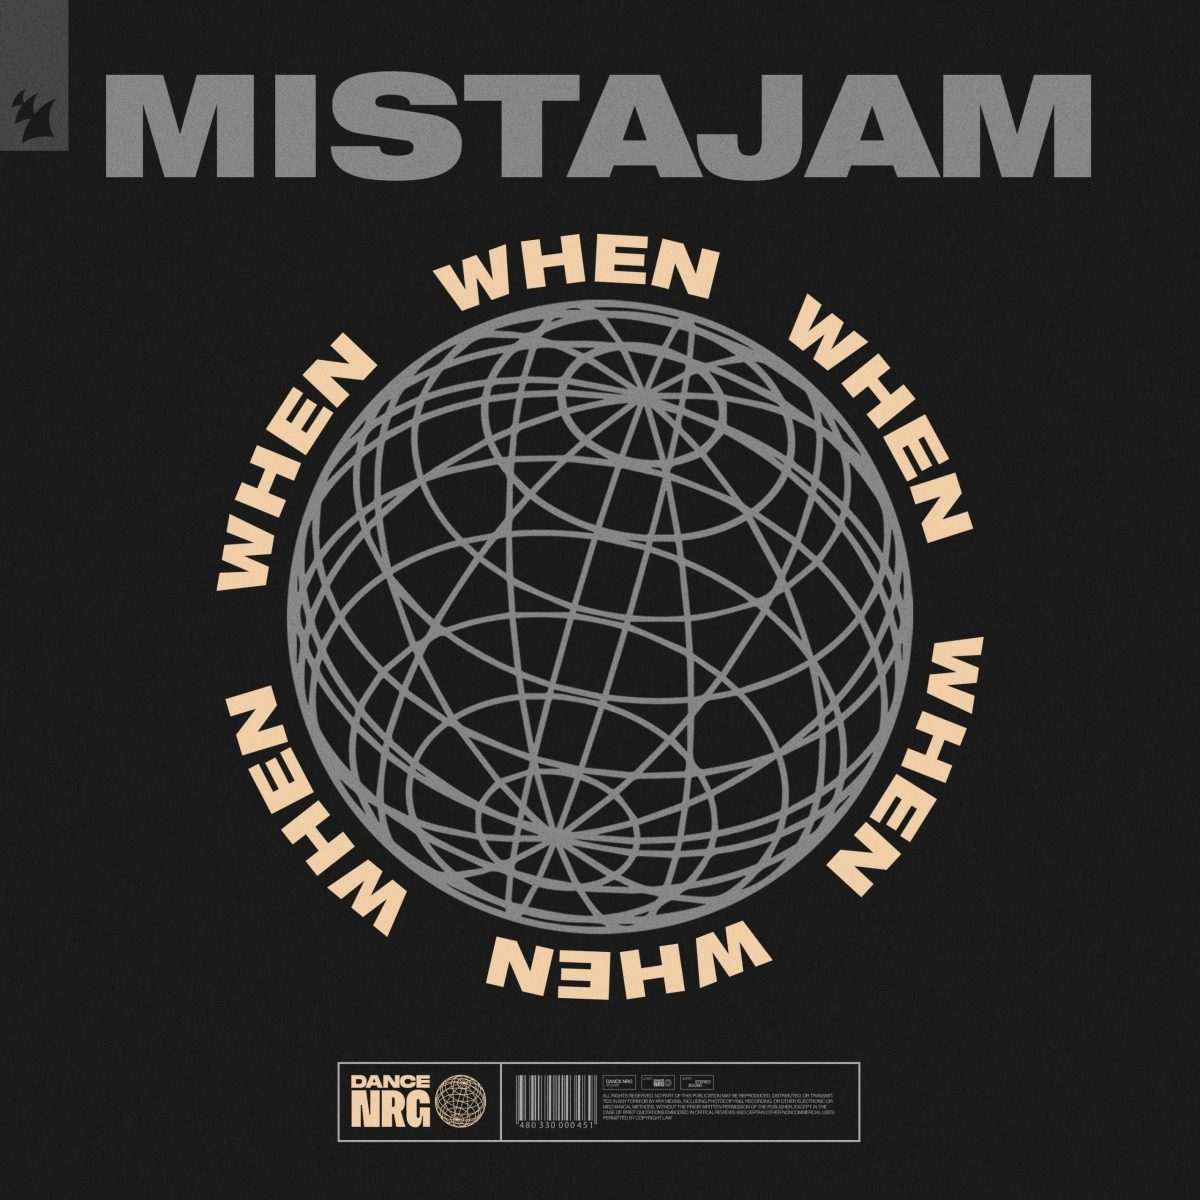 MISTAJAM EMERGES WITH CLEAR-CUT DANCE NRG RELEASE: 'WHEN' – The ...